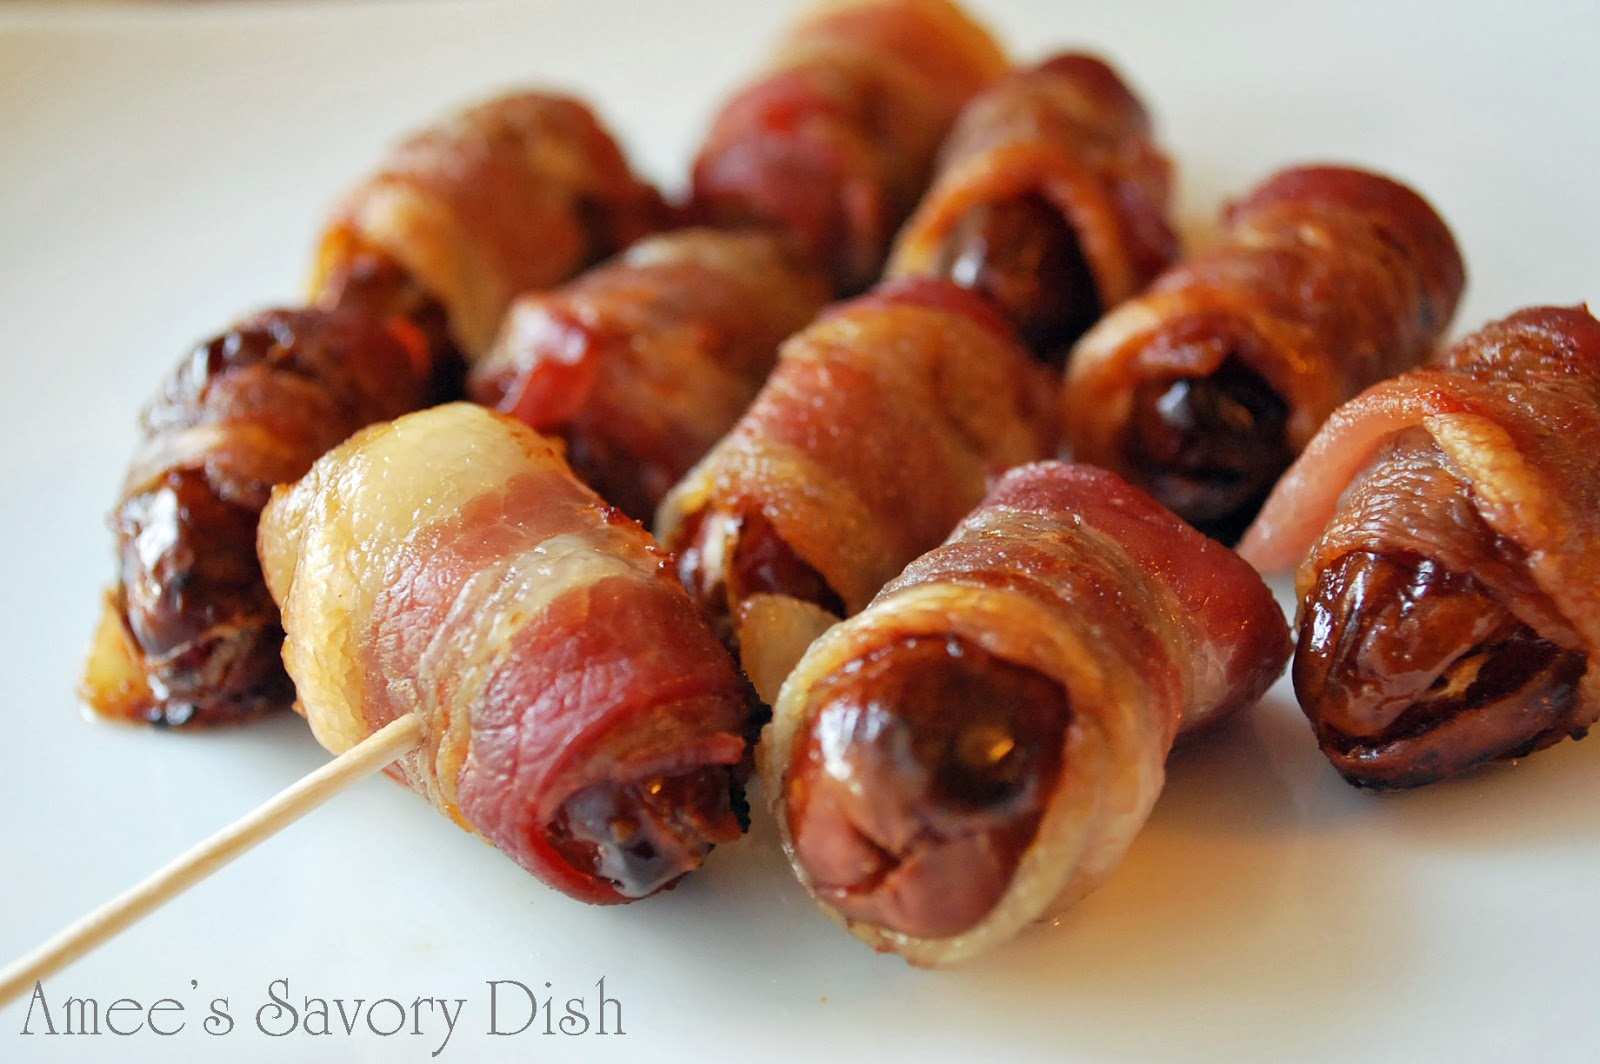 bacon wrapped stuffed dates ingredients 8 oz pitted medjool dates 30 ...